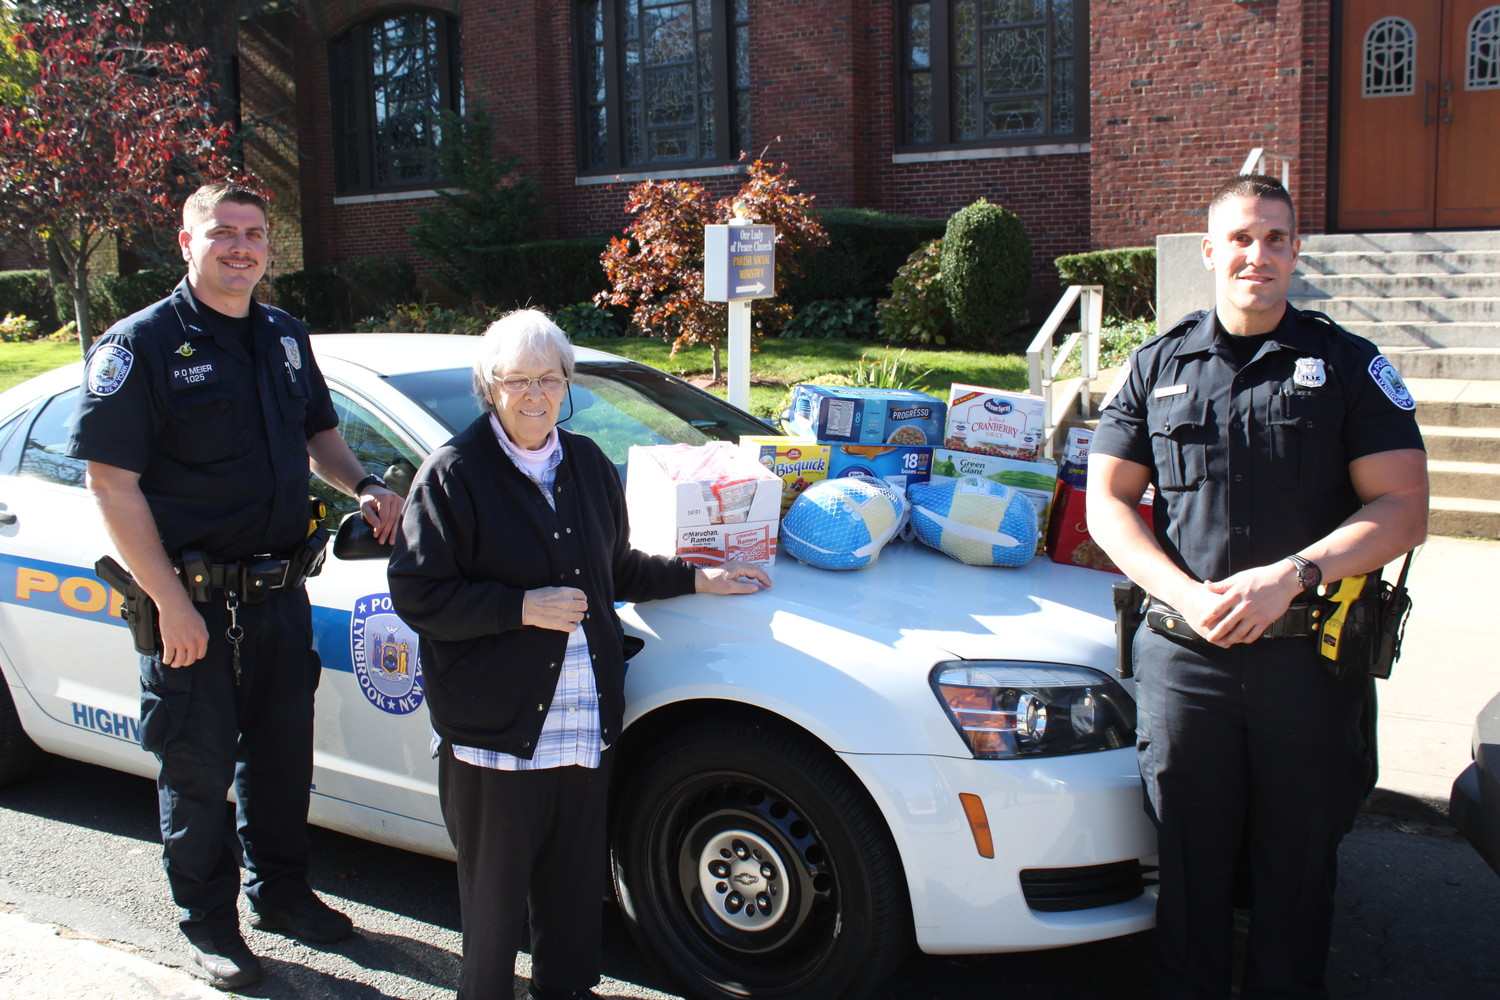 Sister Barbara Faber, center, accepted food pantry donations from Lynbrook Police Officers Robert Meier and Derek Buonora.